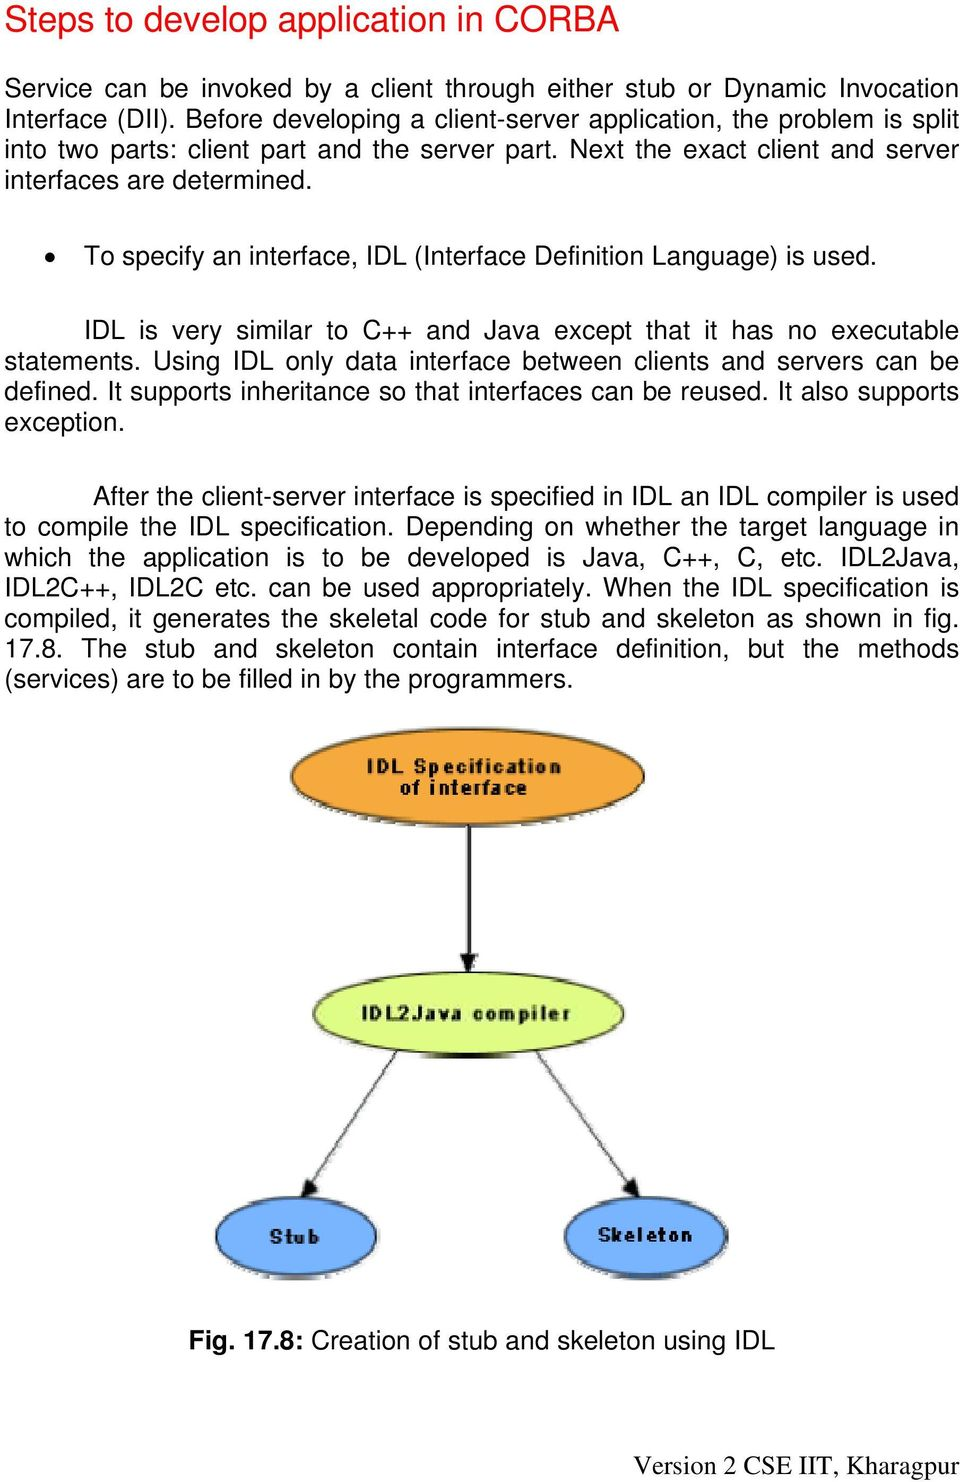 To specify an interface, IDL (Interface Definition Language) is used. IDL is very similar to C++ and Java except that it has no executable statements.